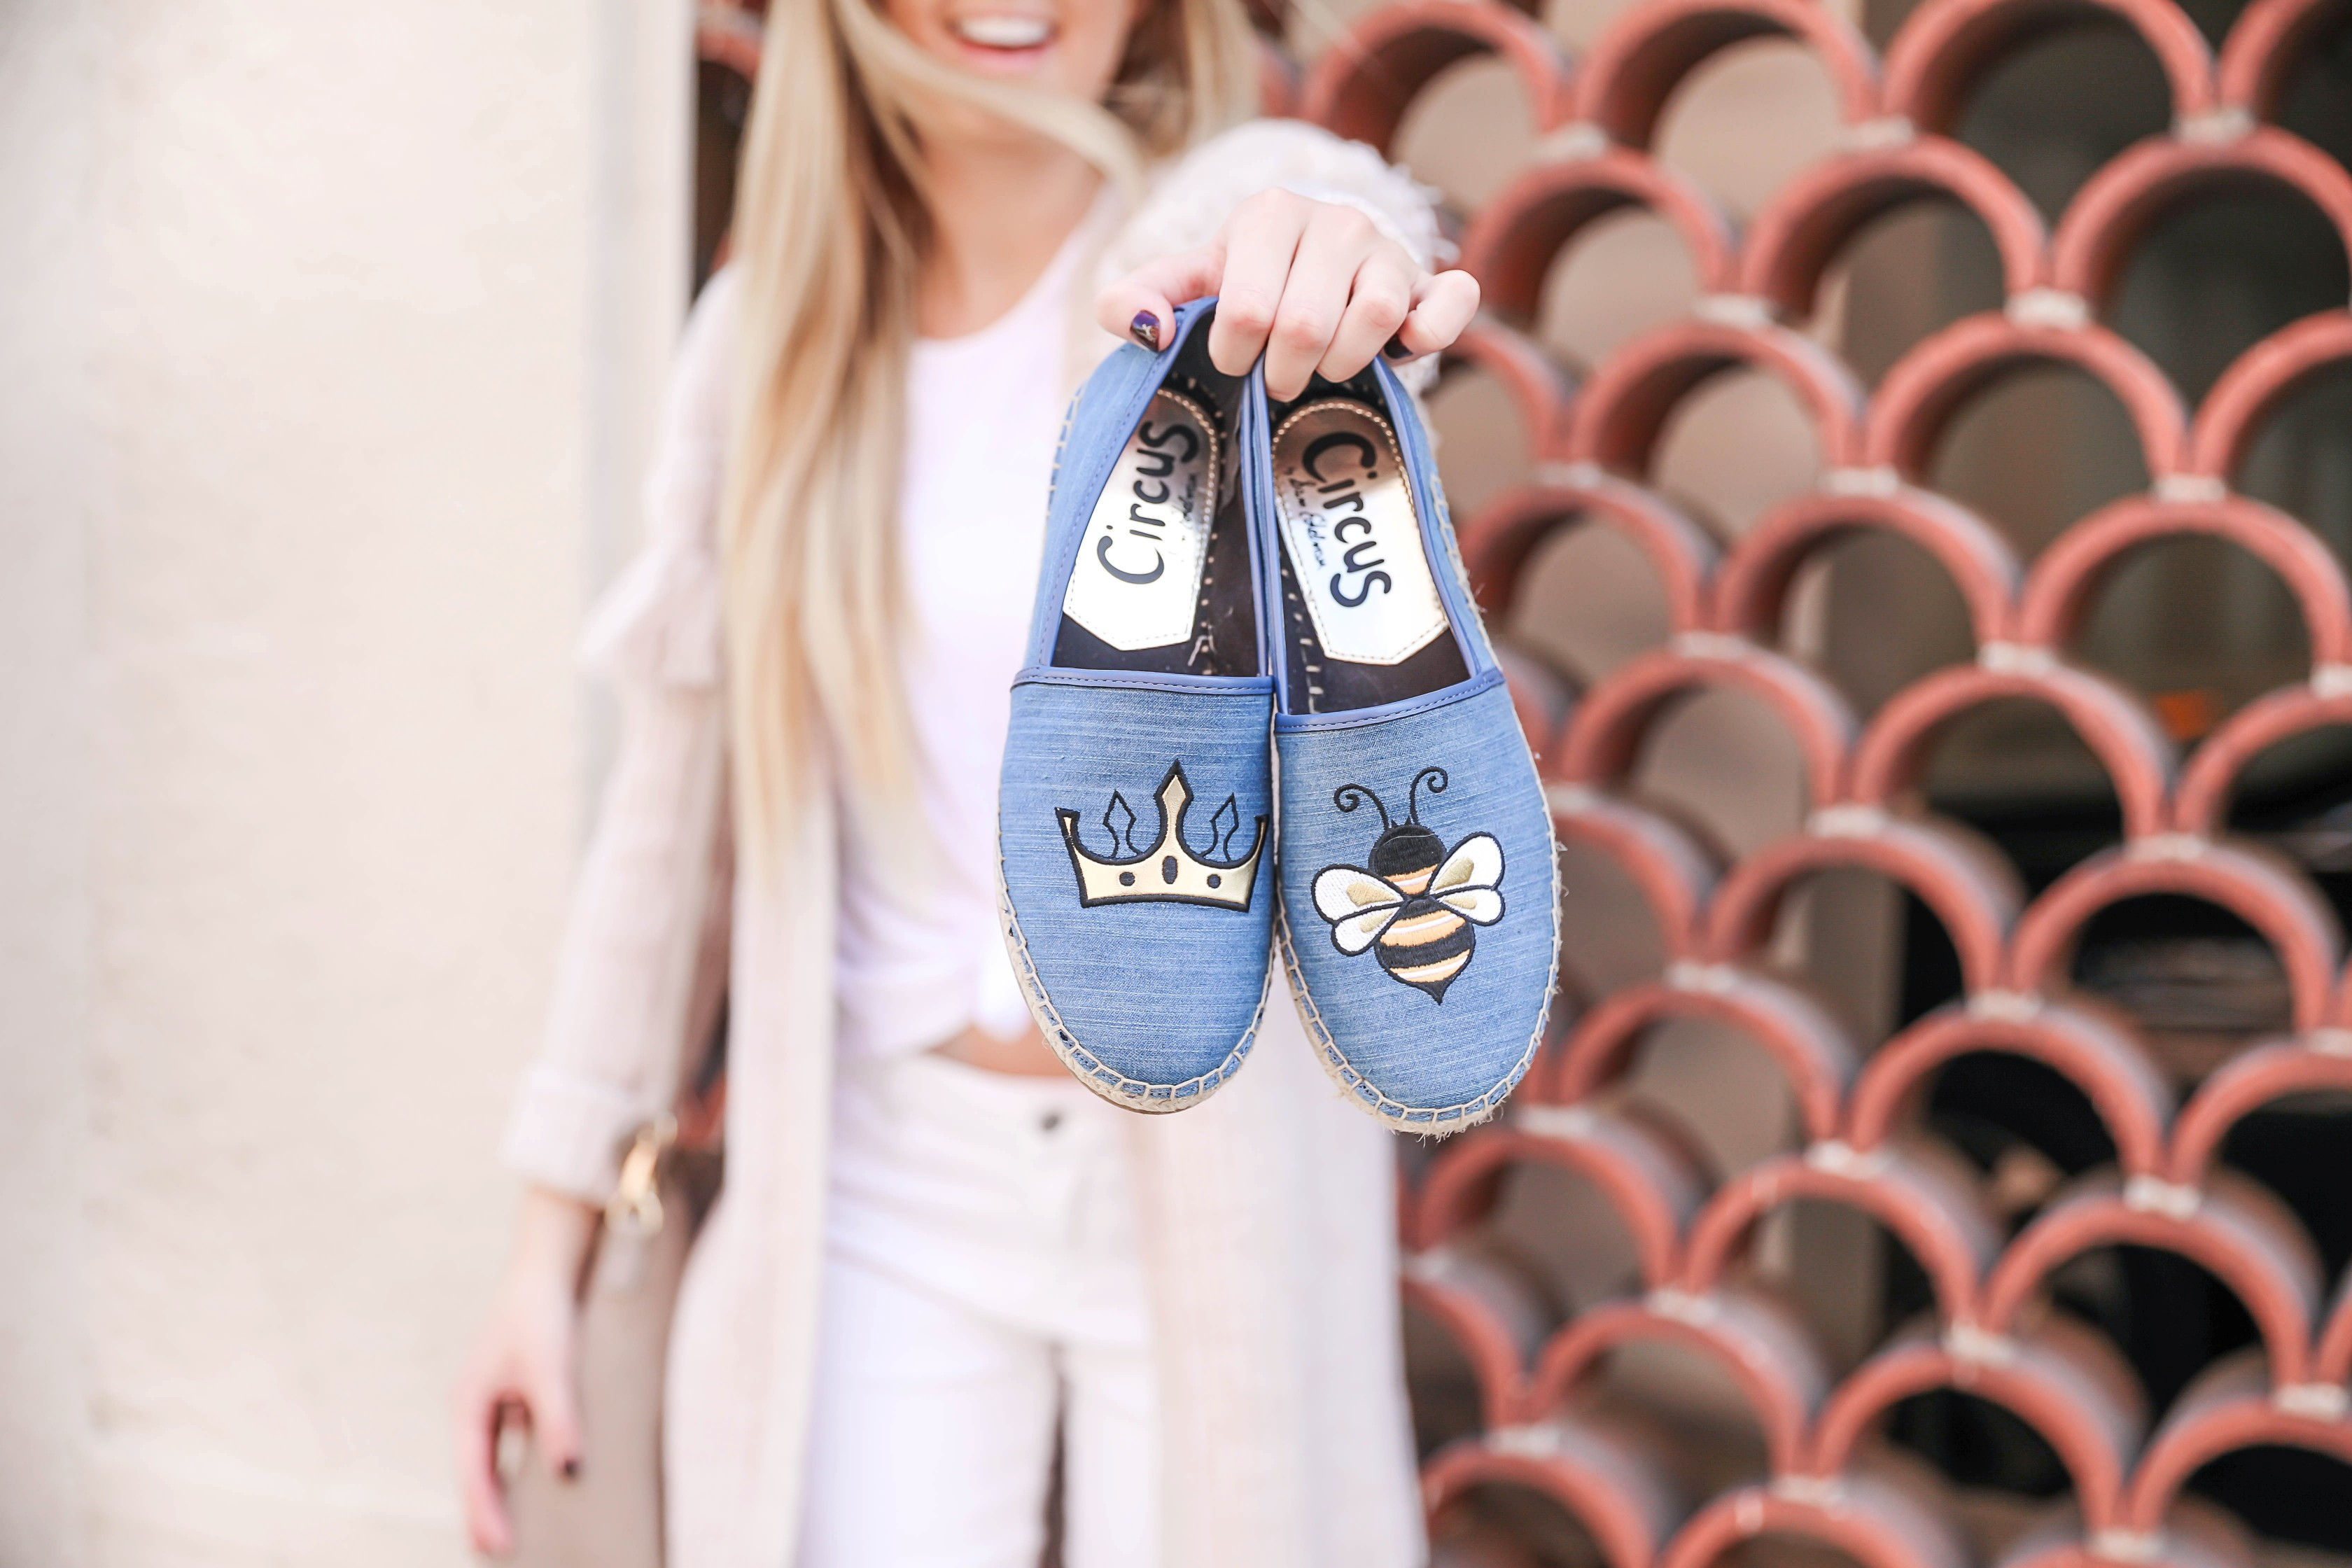 Statement shoes for fall from Stage Stores! I can't stop buying shoes for this season, I am sharing this super cute all white look with these adorable Sam Edelman soludos flats that say